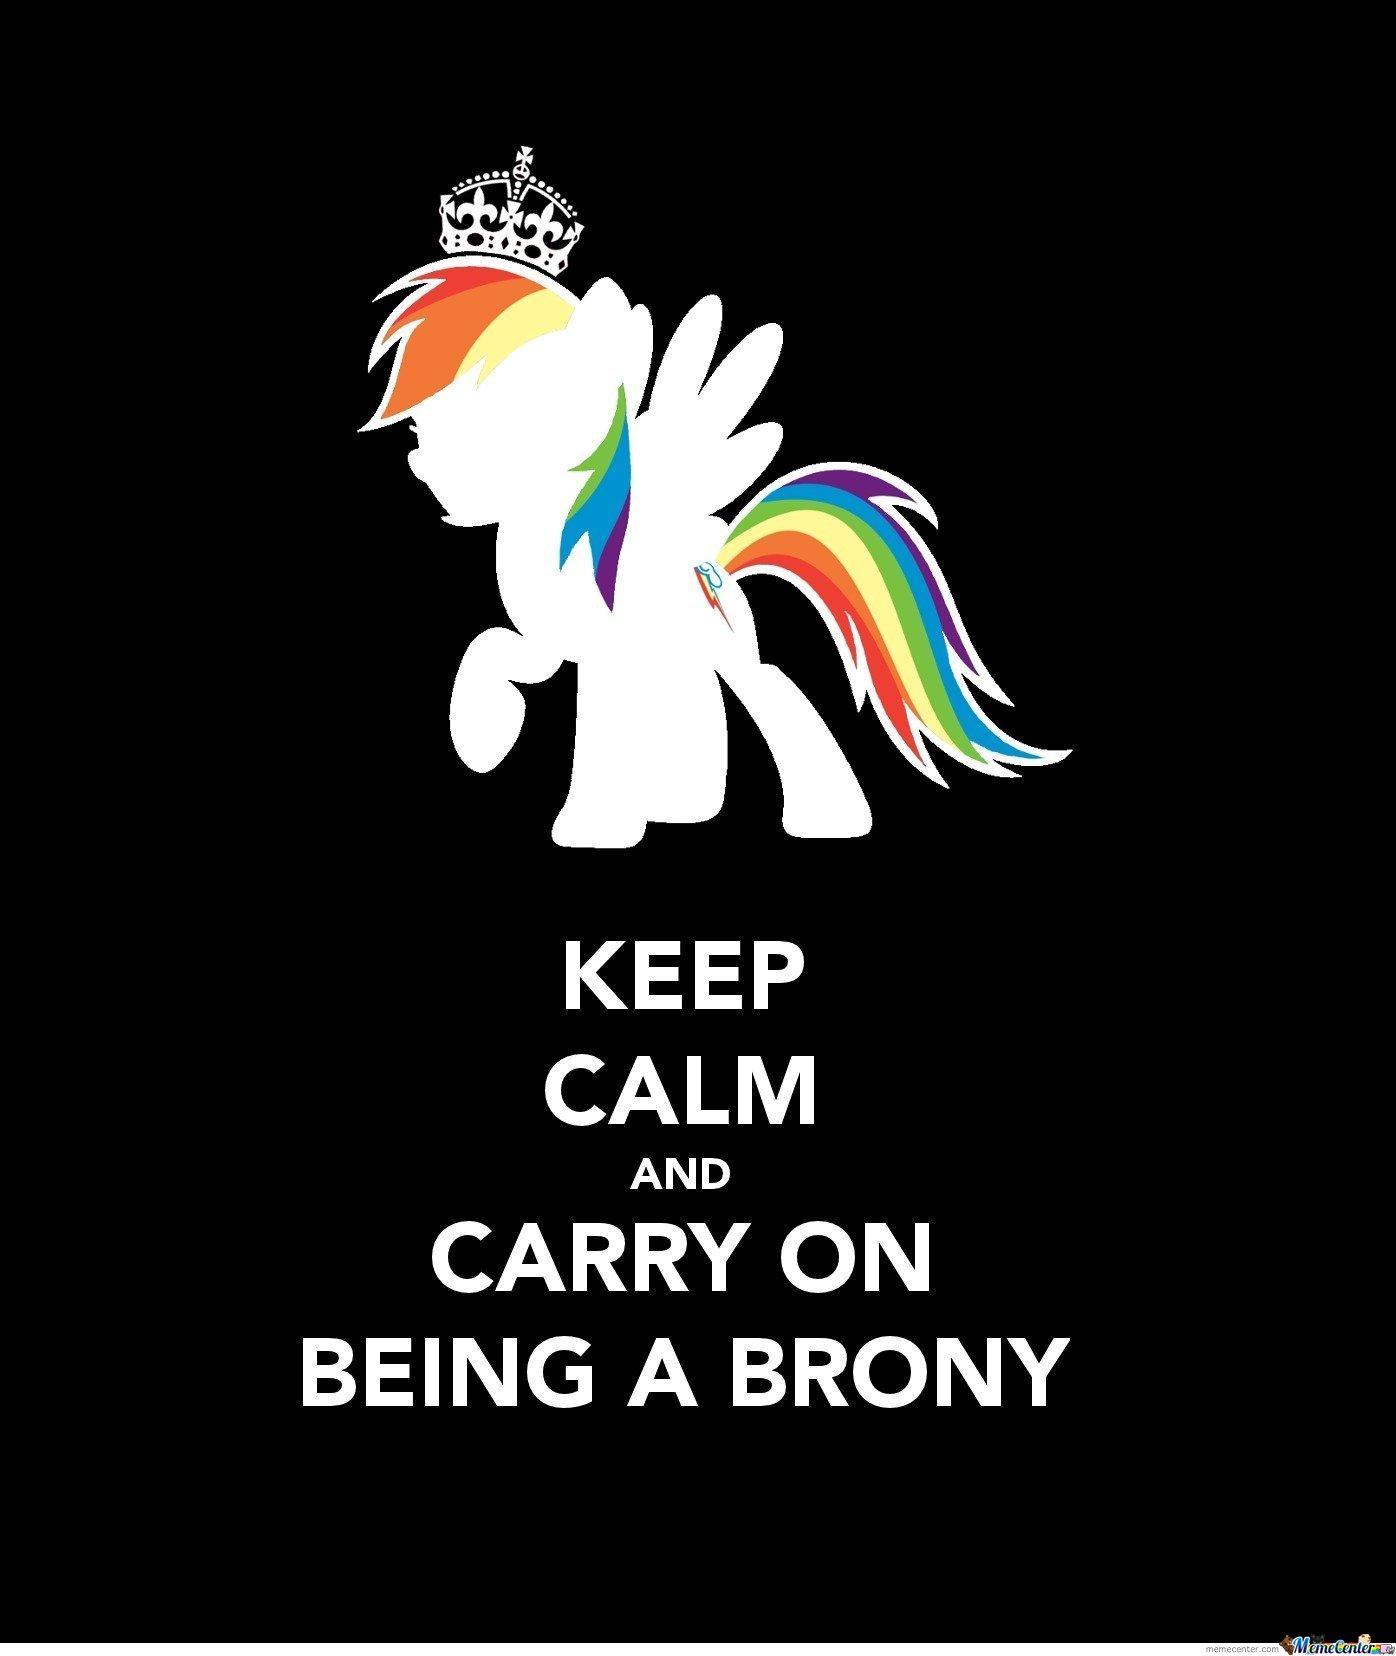 Stay Calm Everybrony